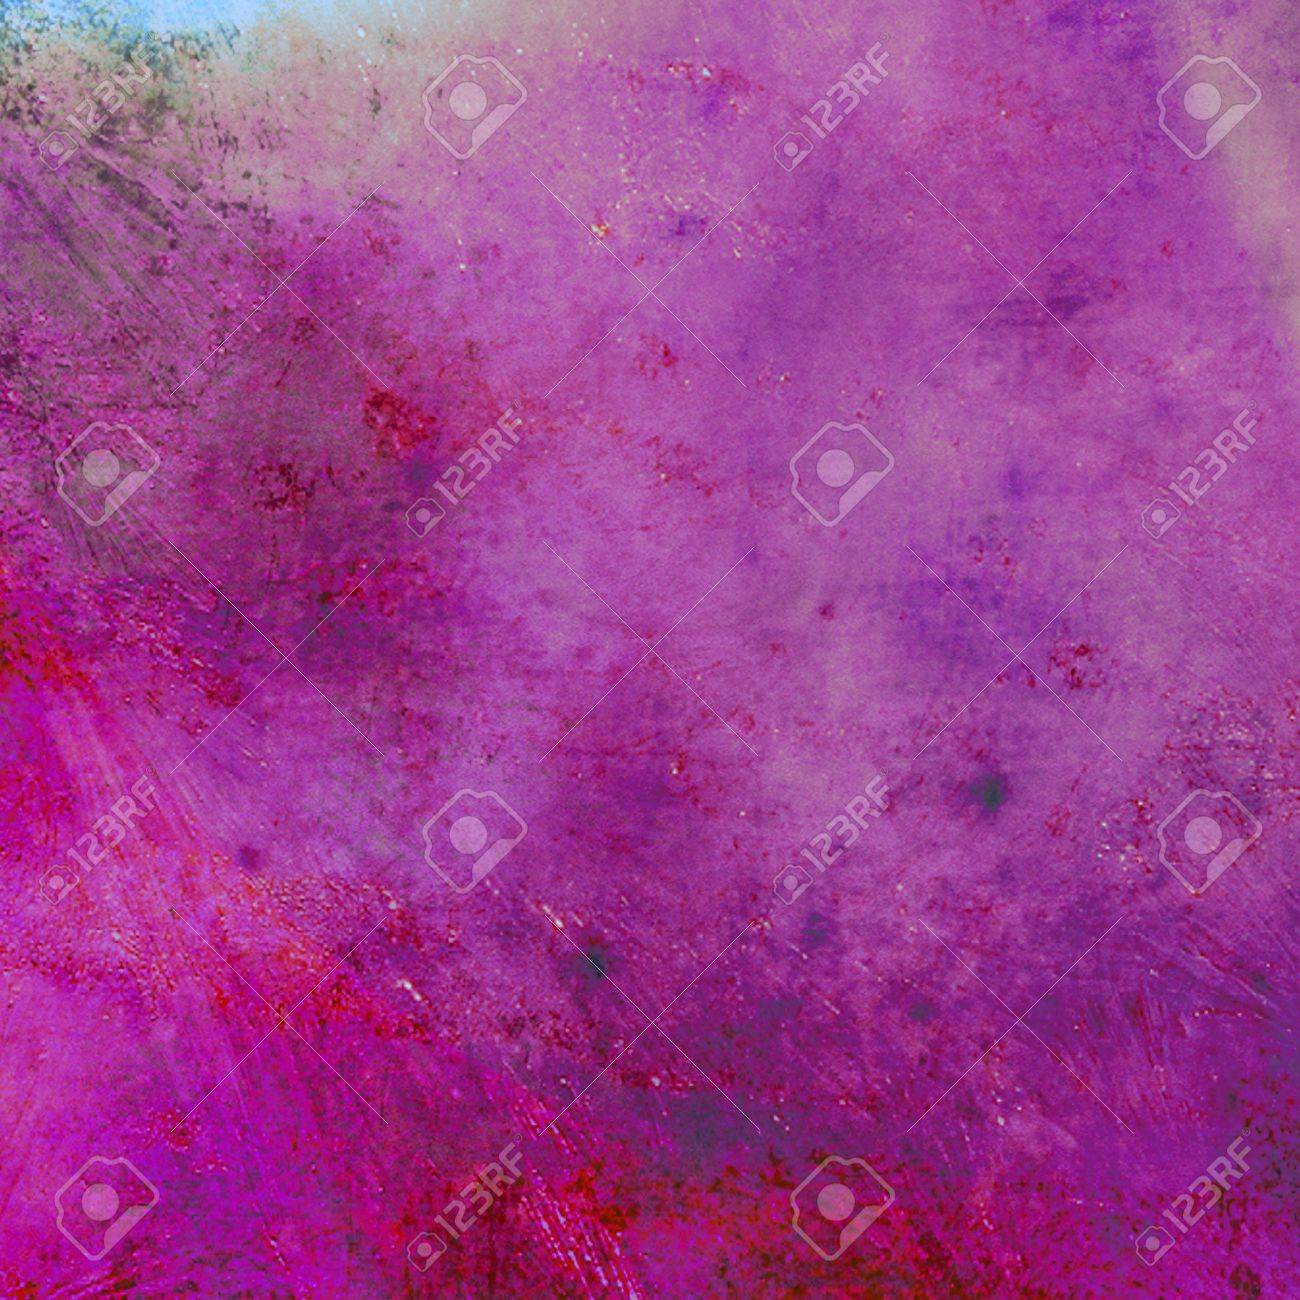 Abstract illustrated grunge background pattern for your text Stock Photo - 11981905